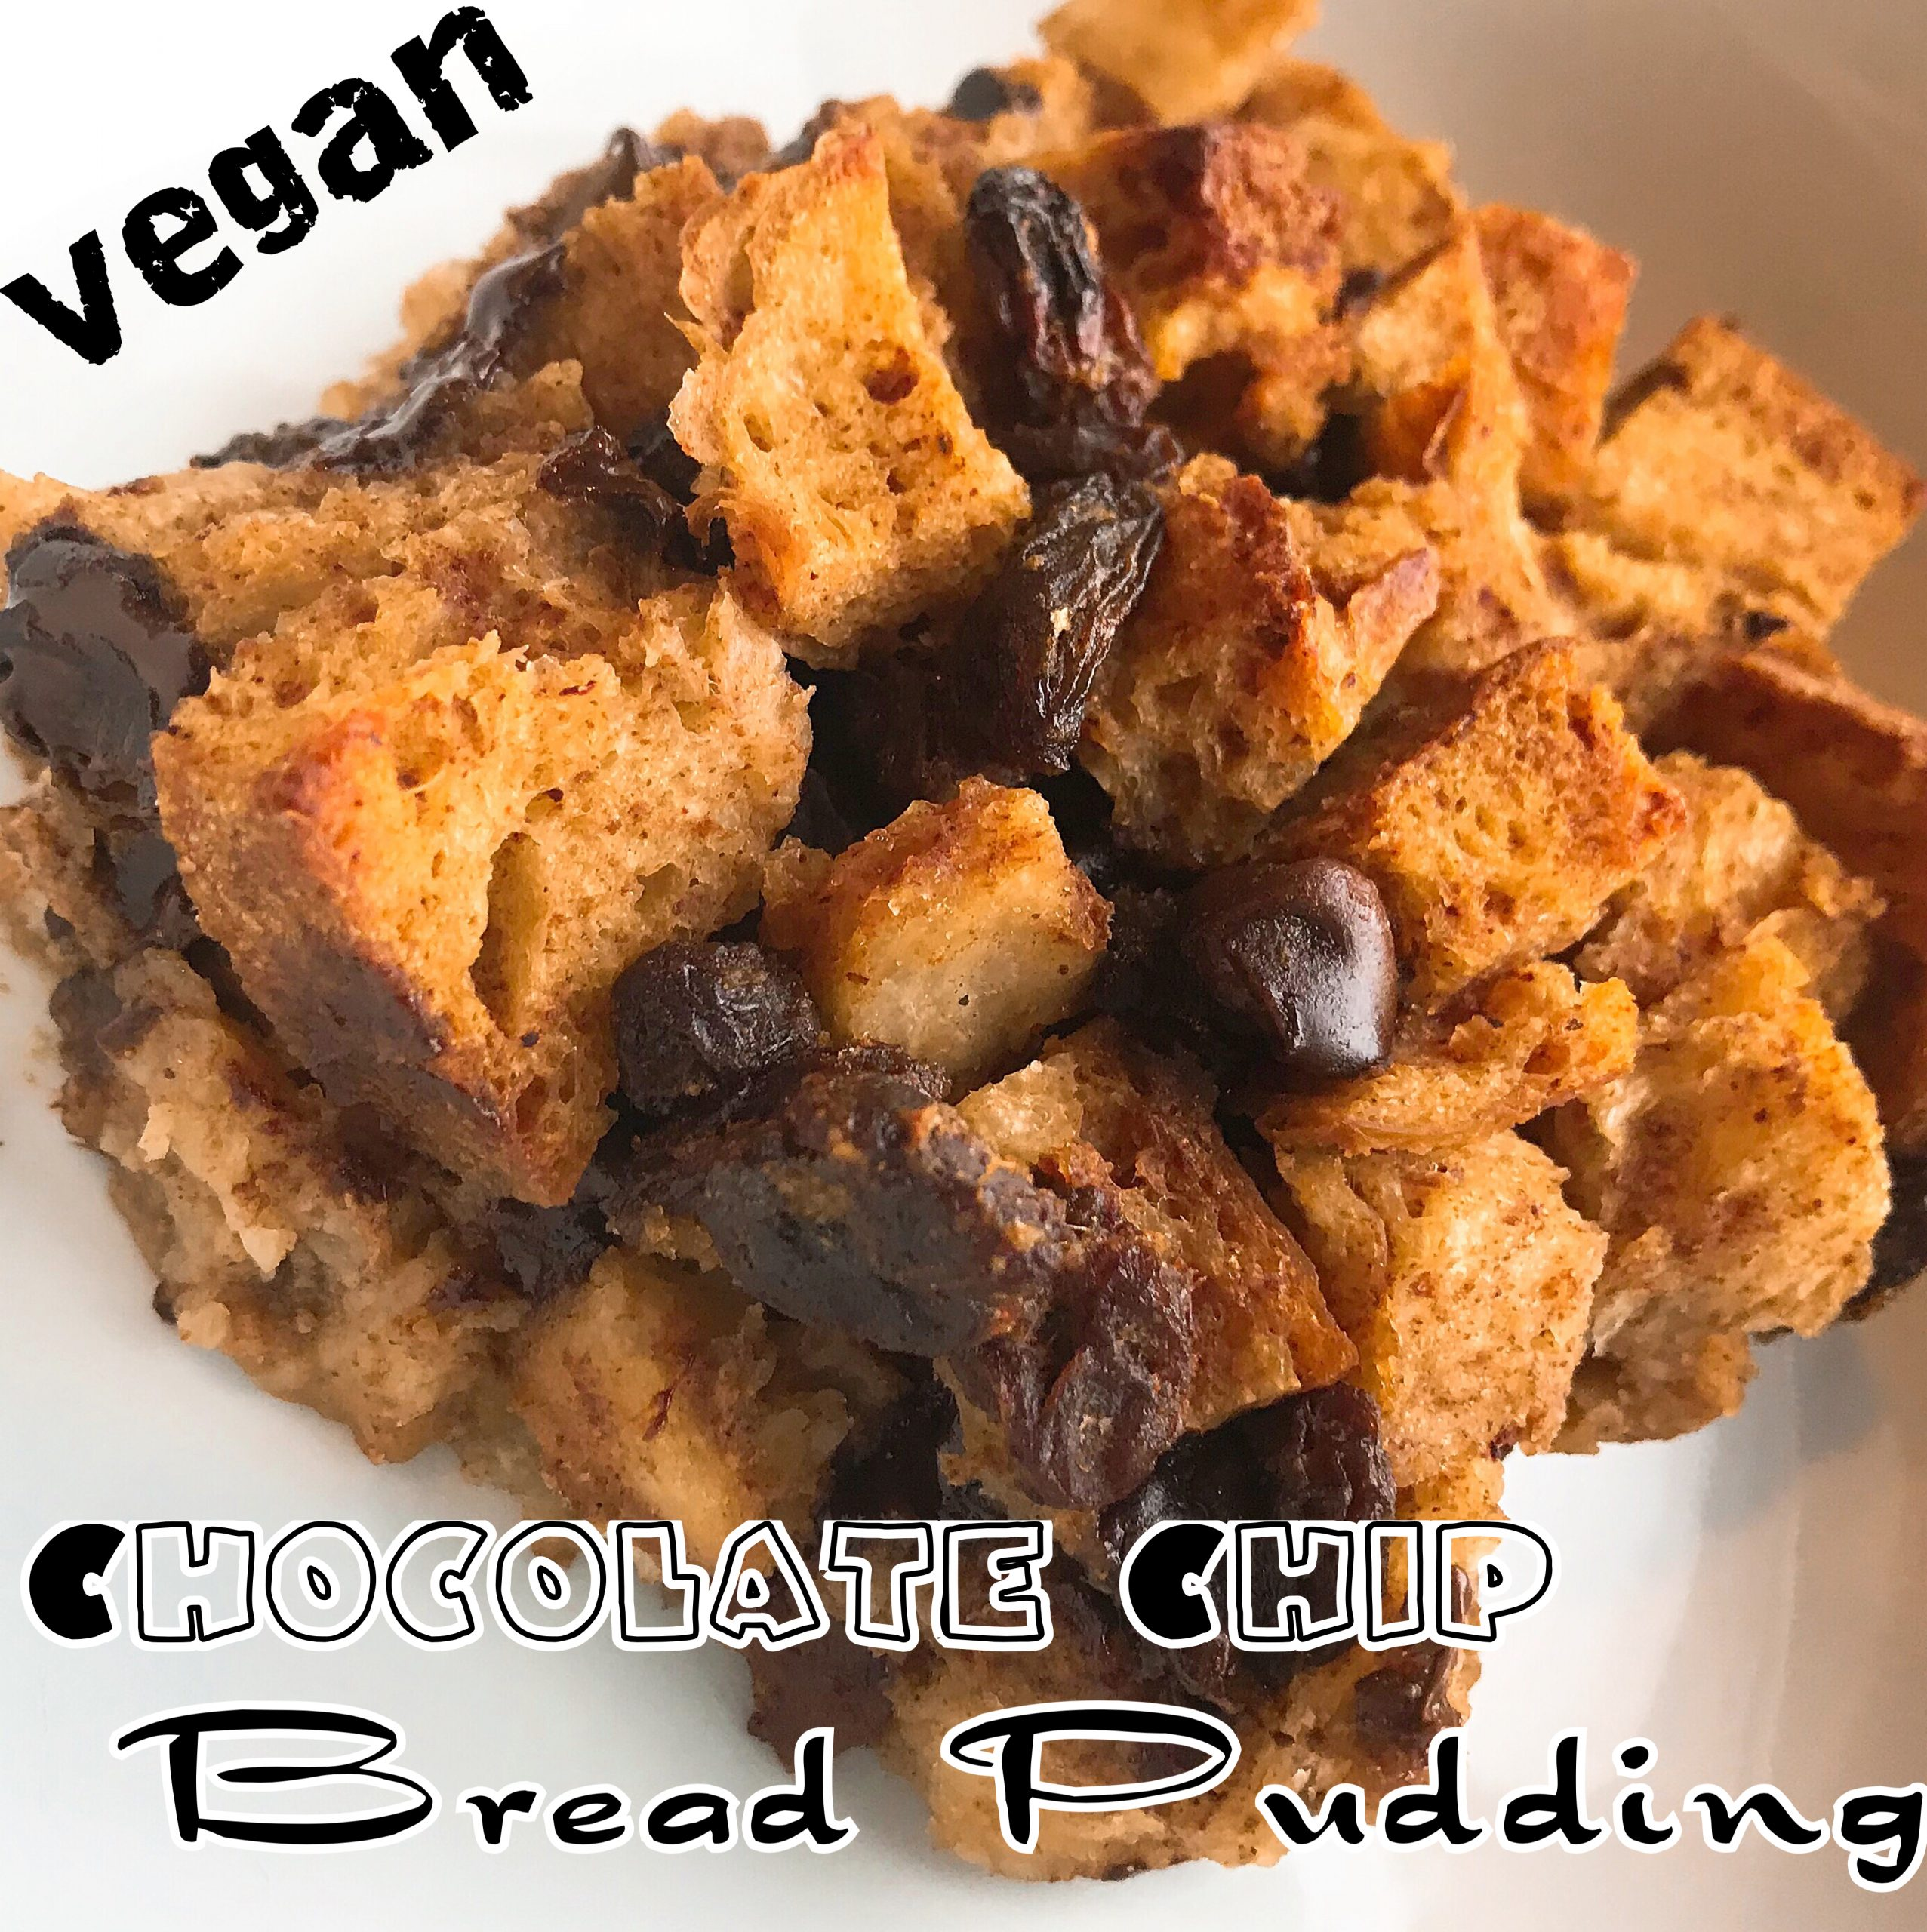 Protected: Vegan Chocolate Chip Bread Pudding